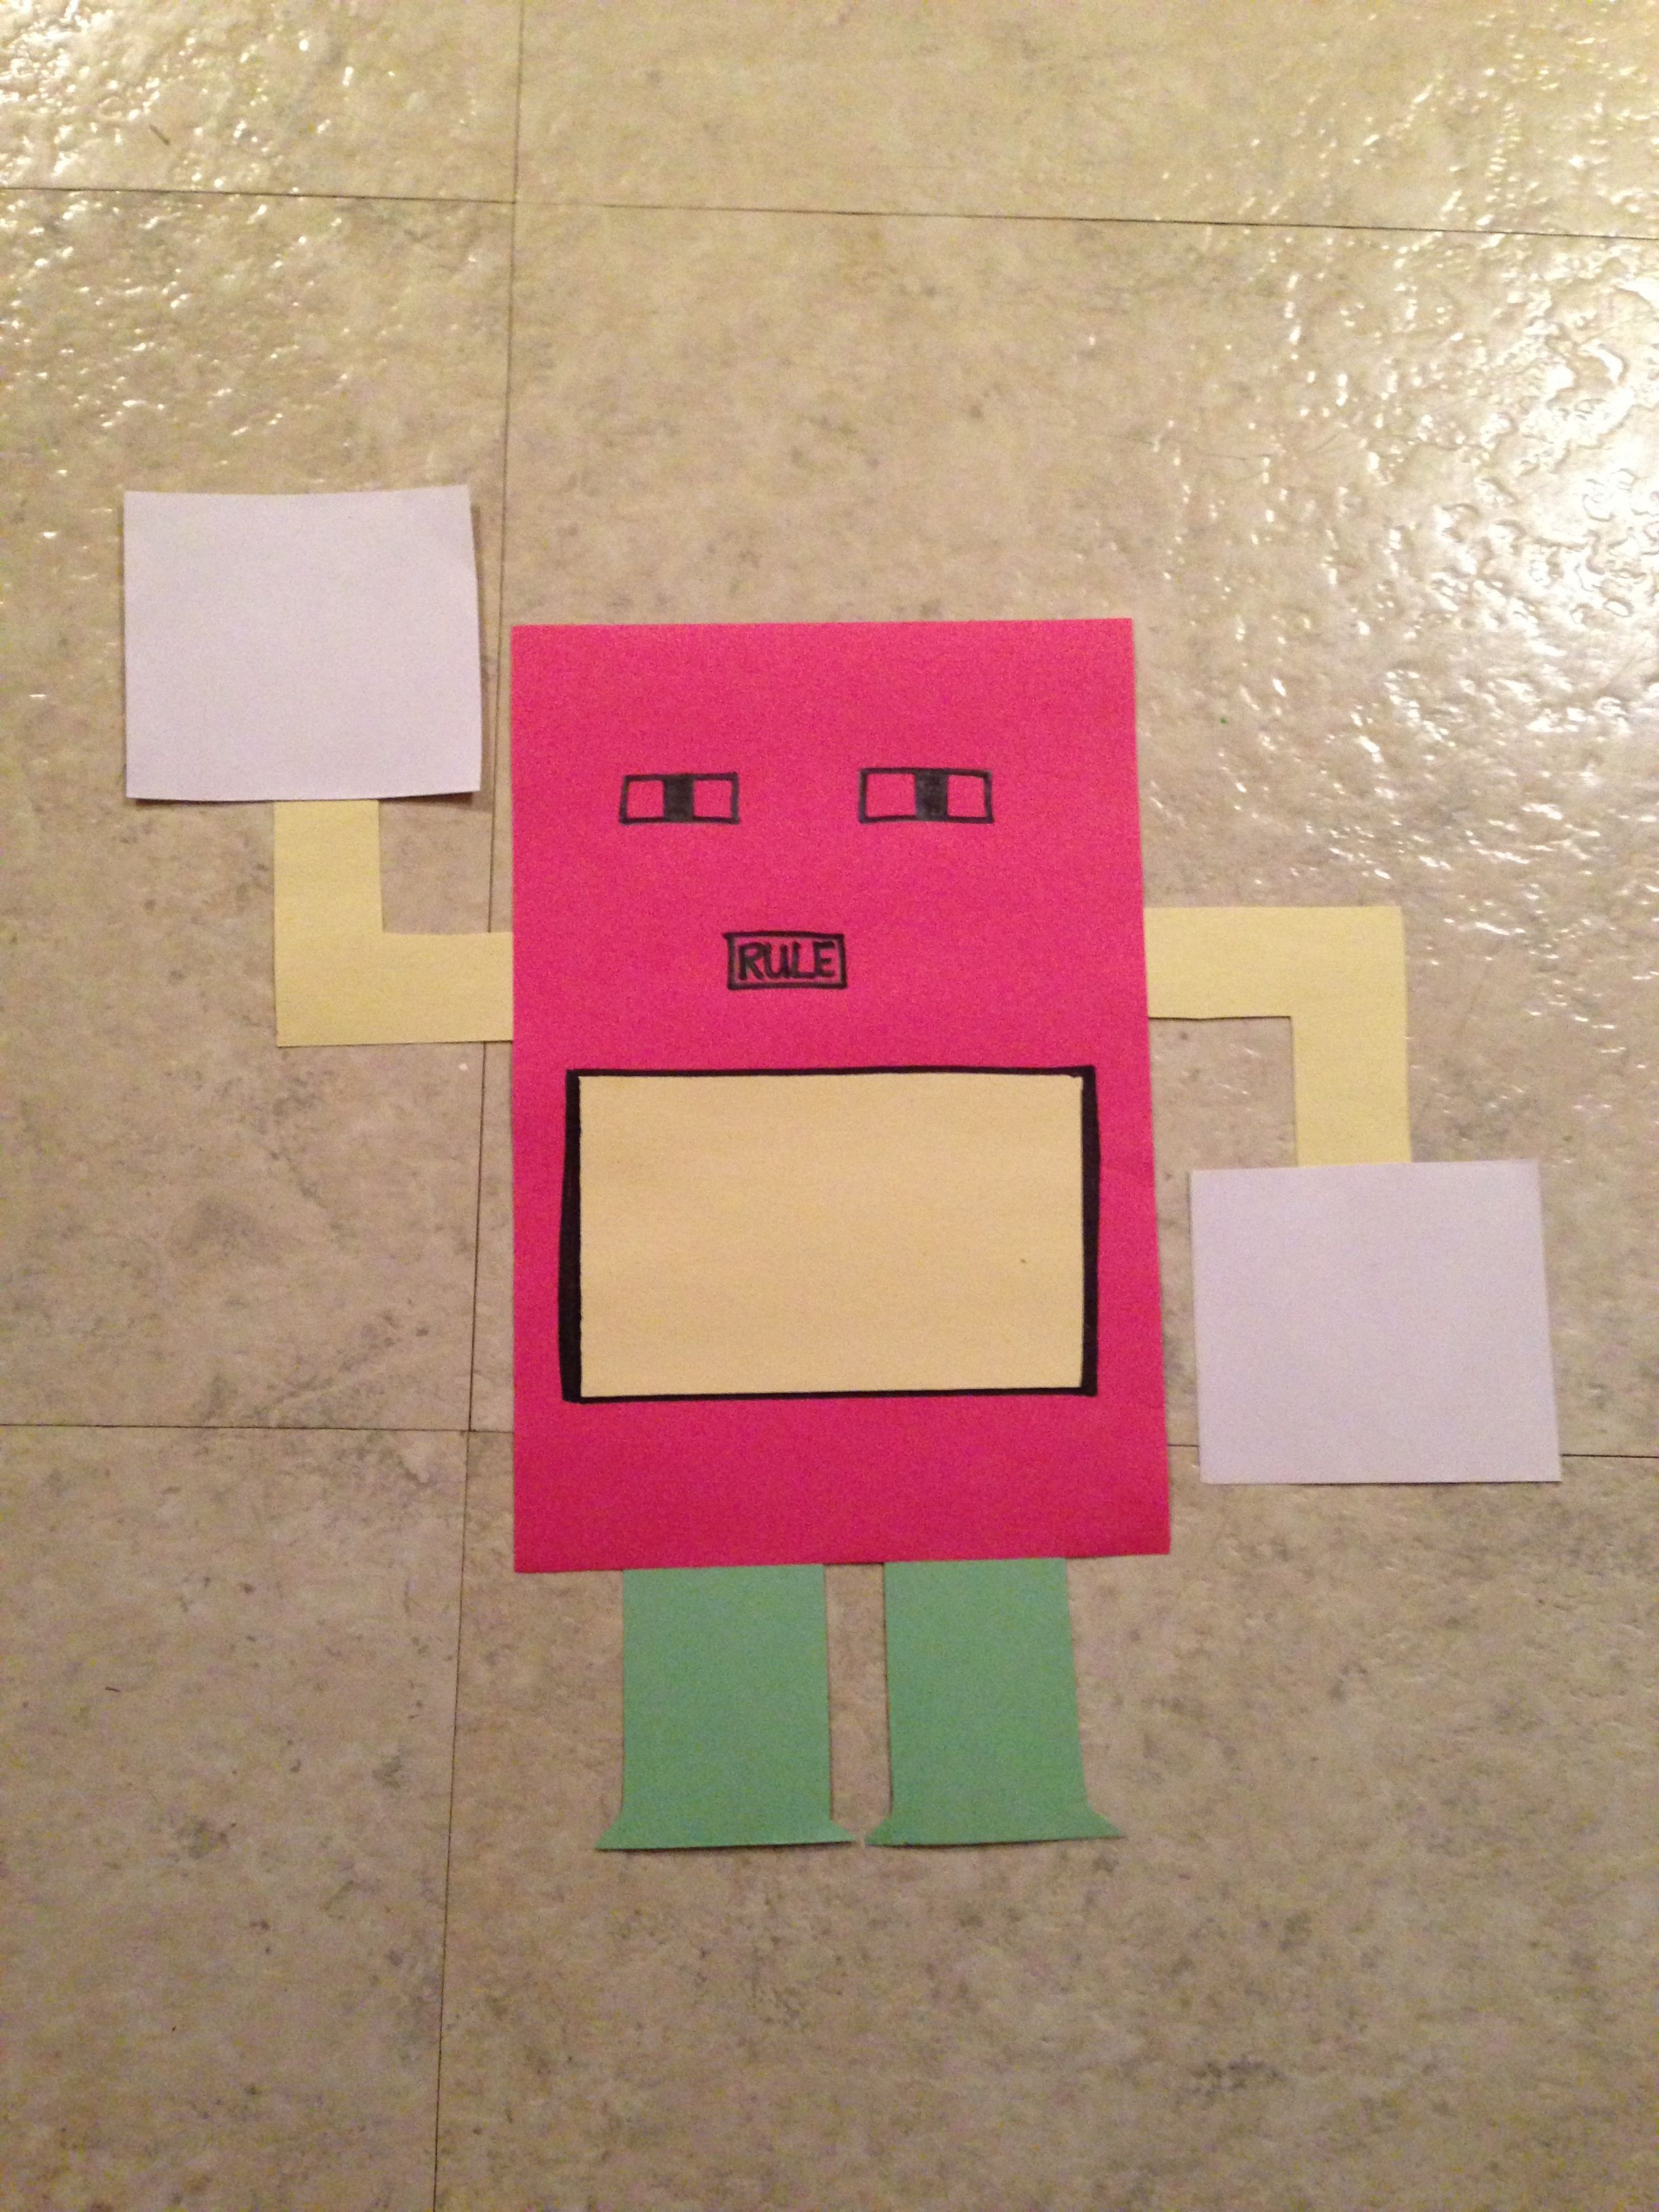 Input Output Machine Man Or Woman My Students Loved